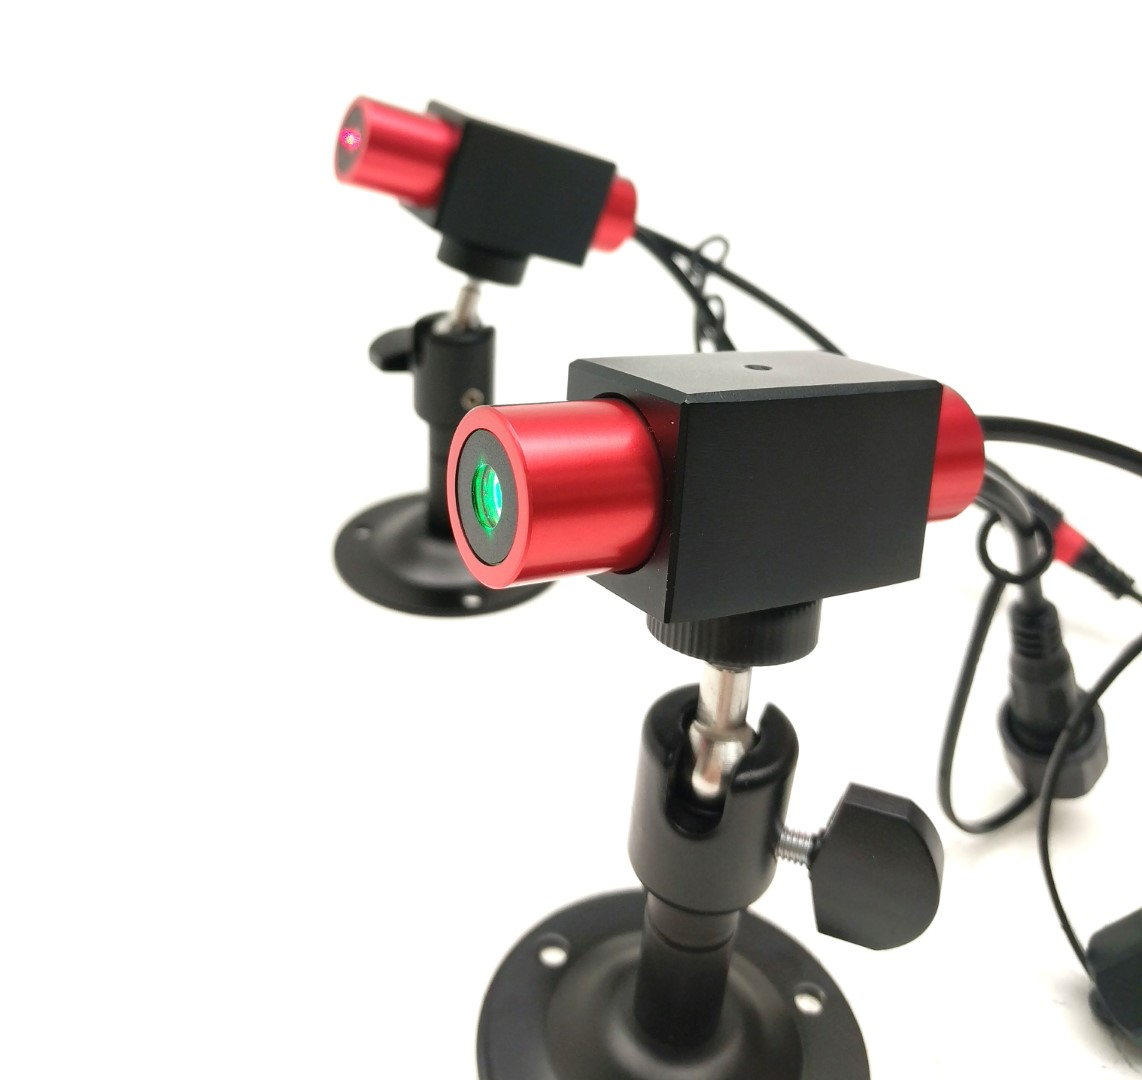 20 mW 635 nm Red Premium Structured Cross Laser, 25° fan angle, adjustable focus, TTL+, Sealed IP67